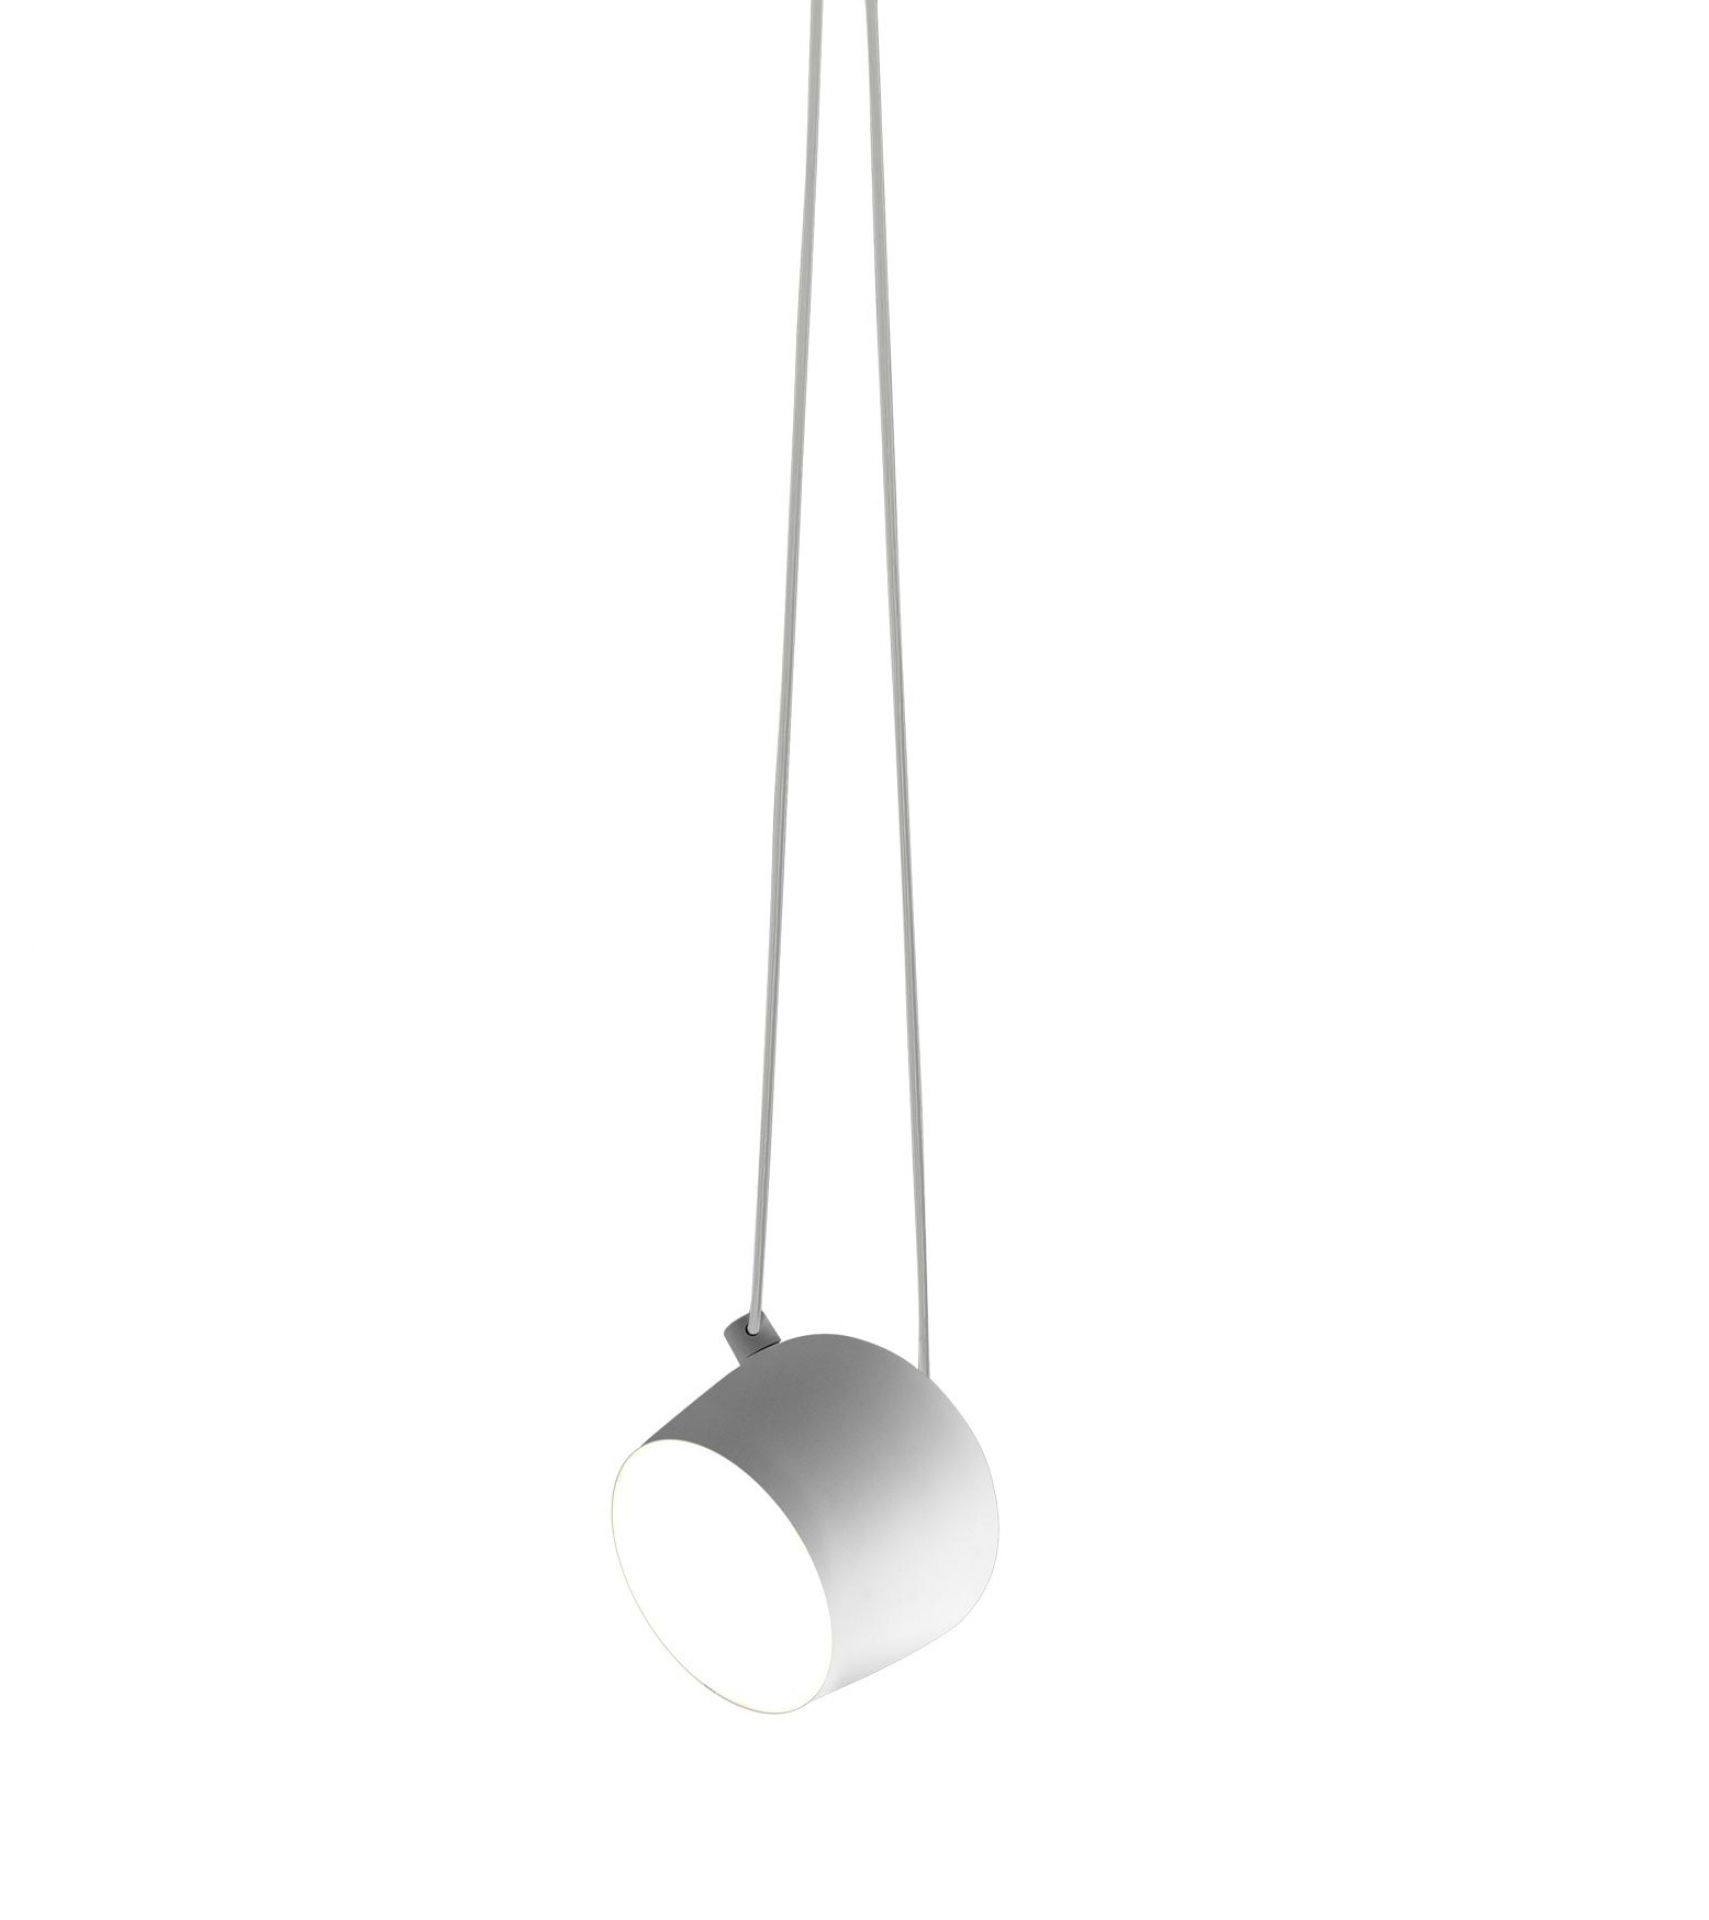 Aim Small Pendant light Flos White with dimmer